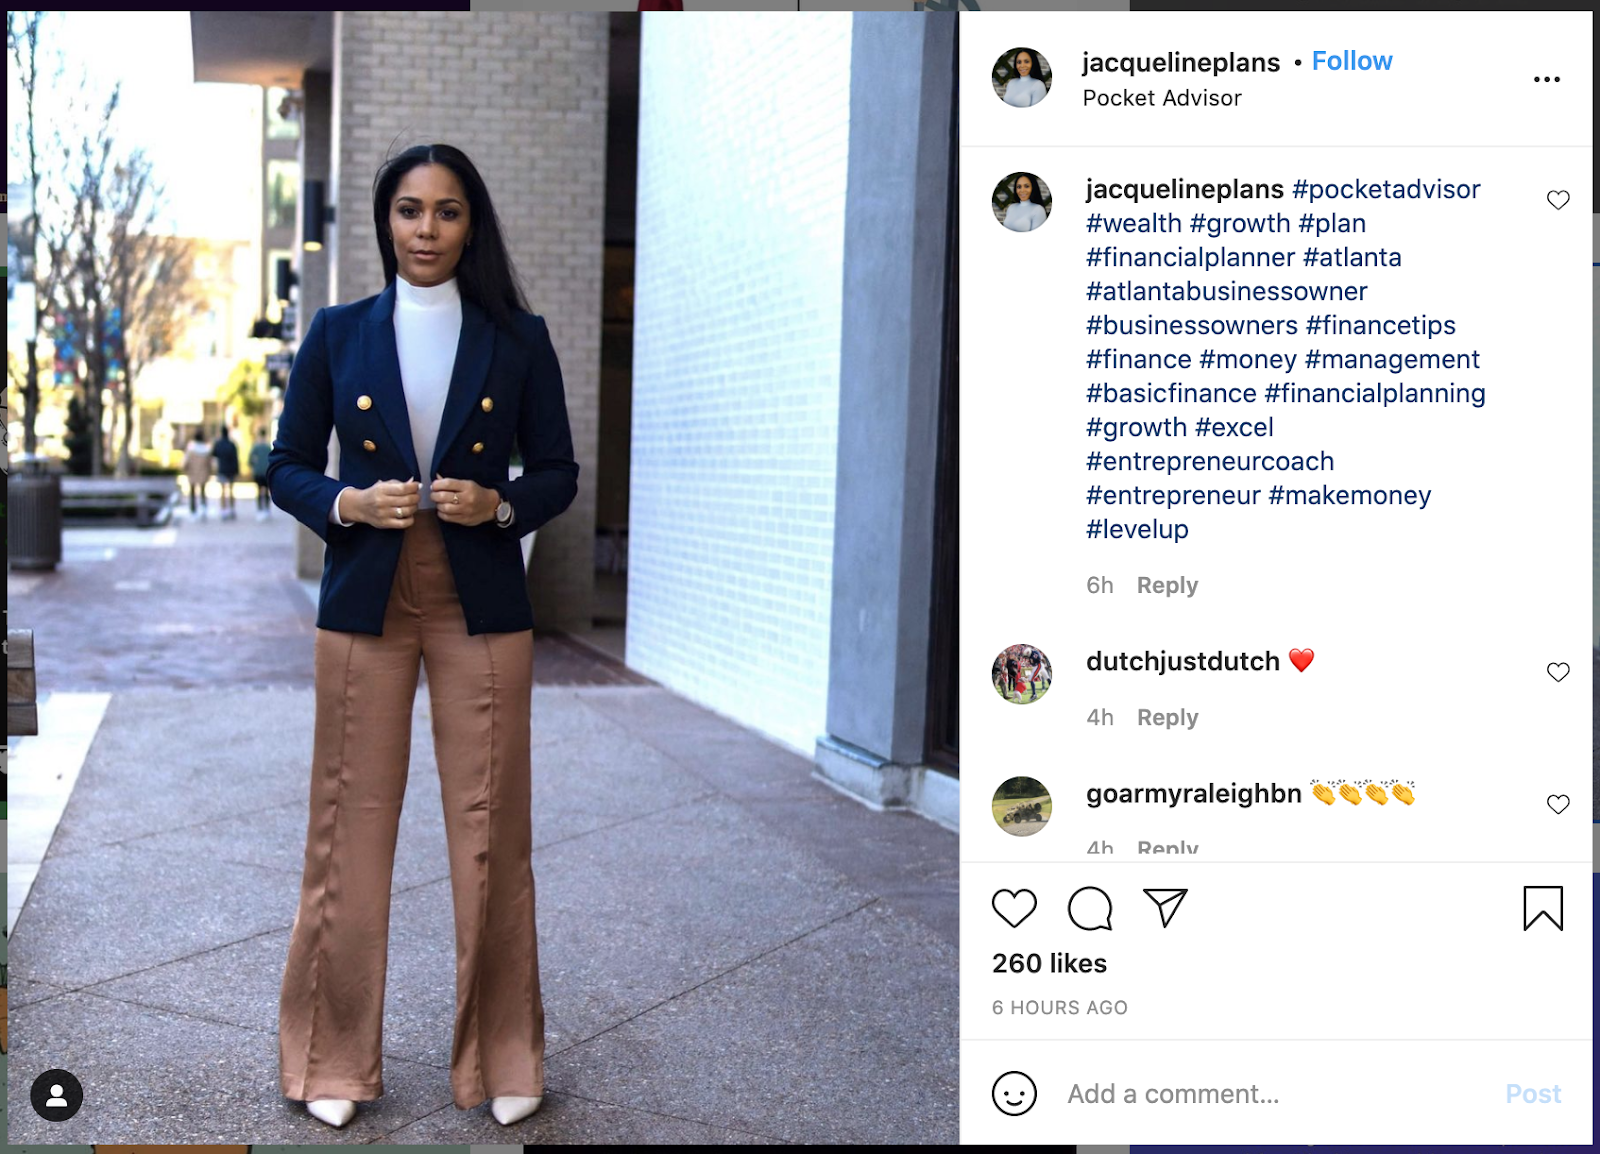 examples of using multiple hashtags on a post on instagram